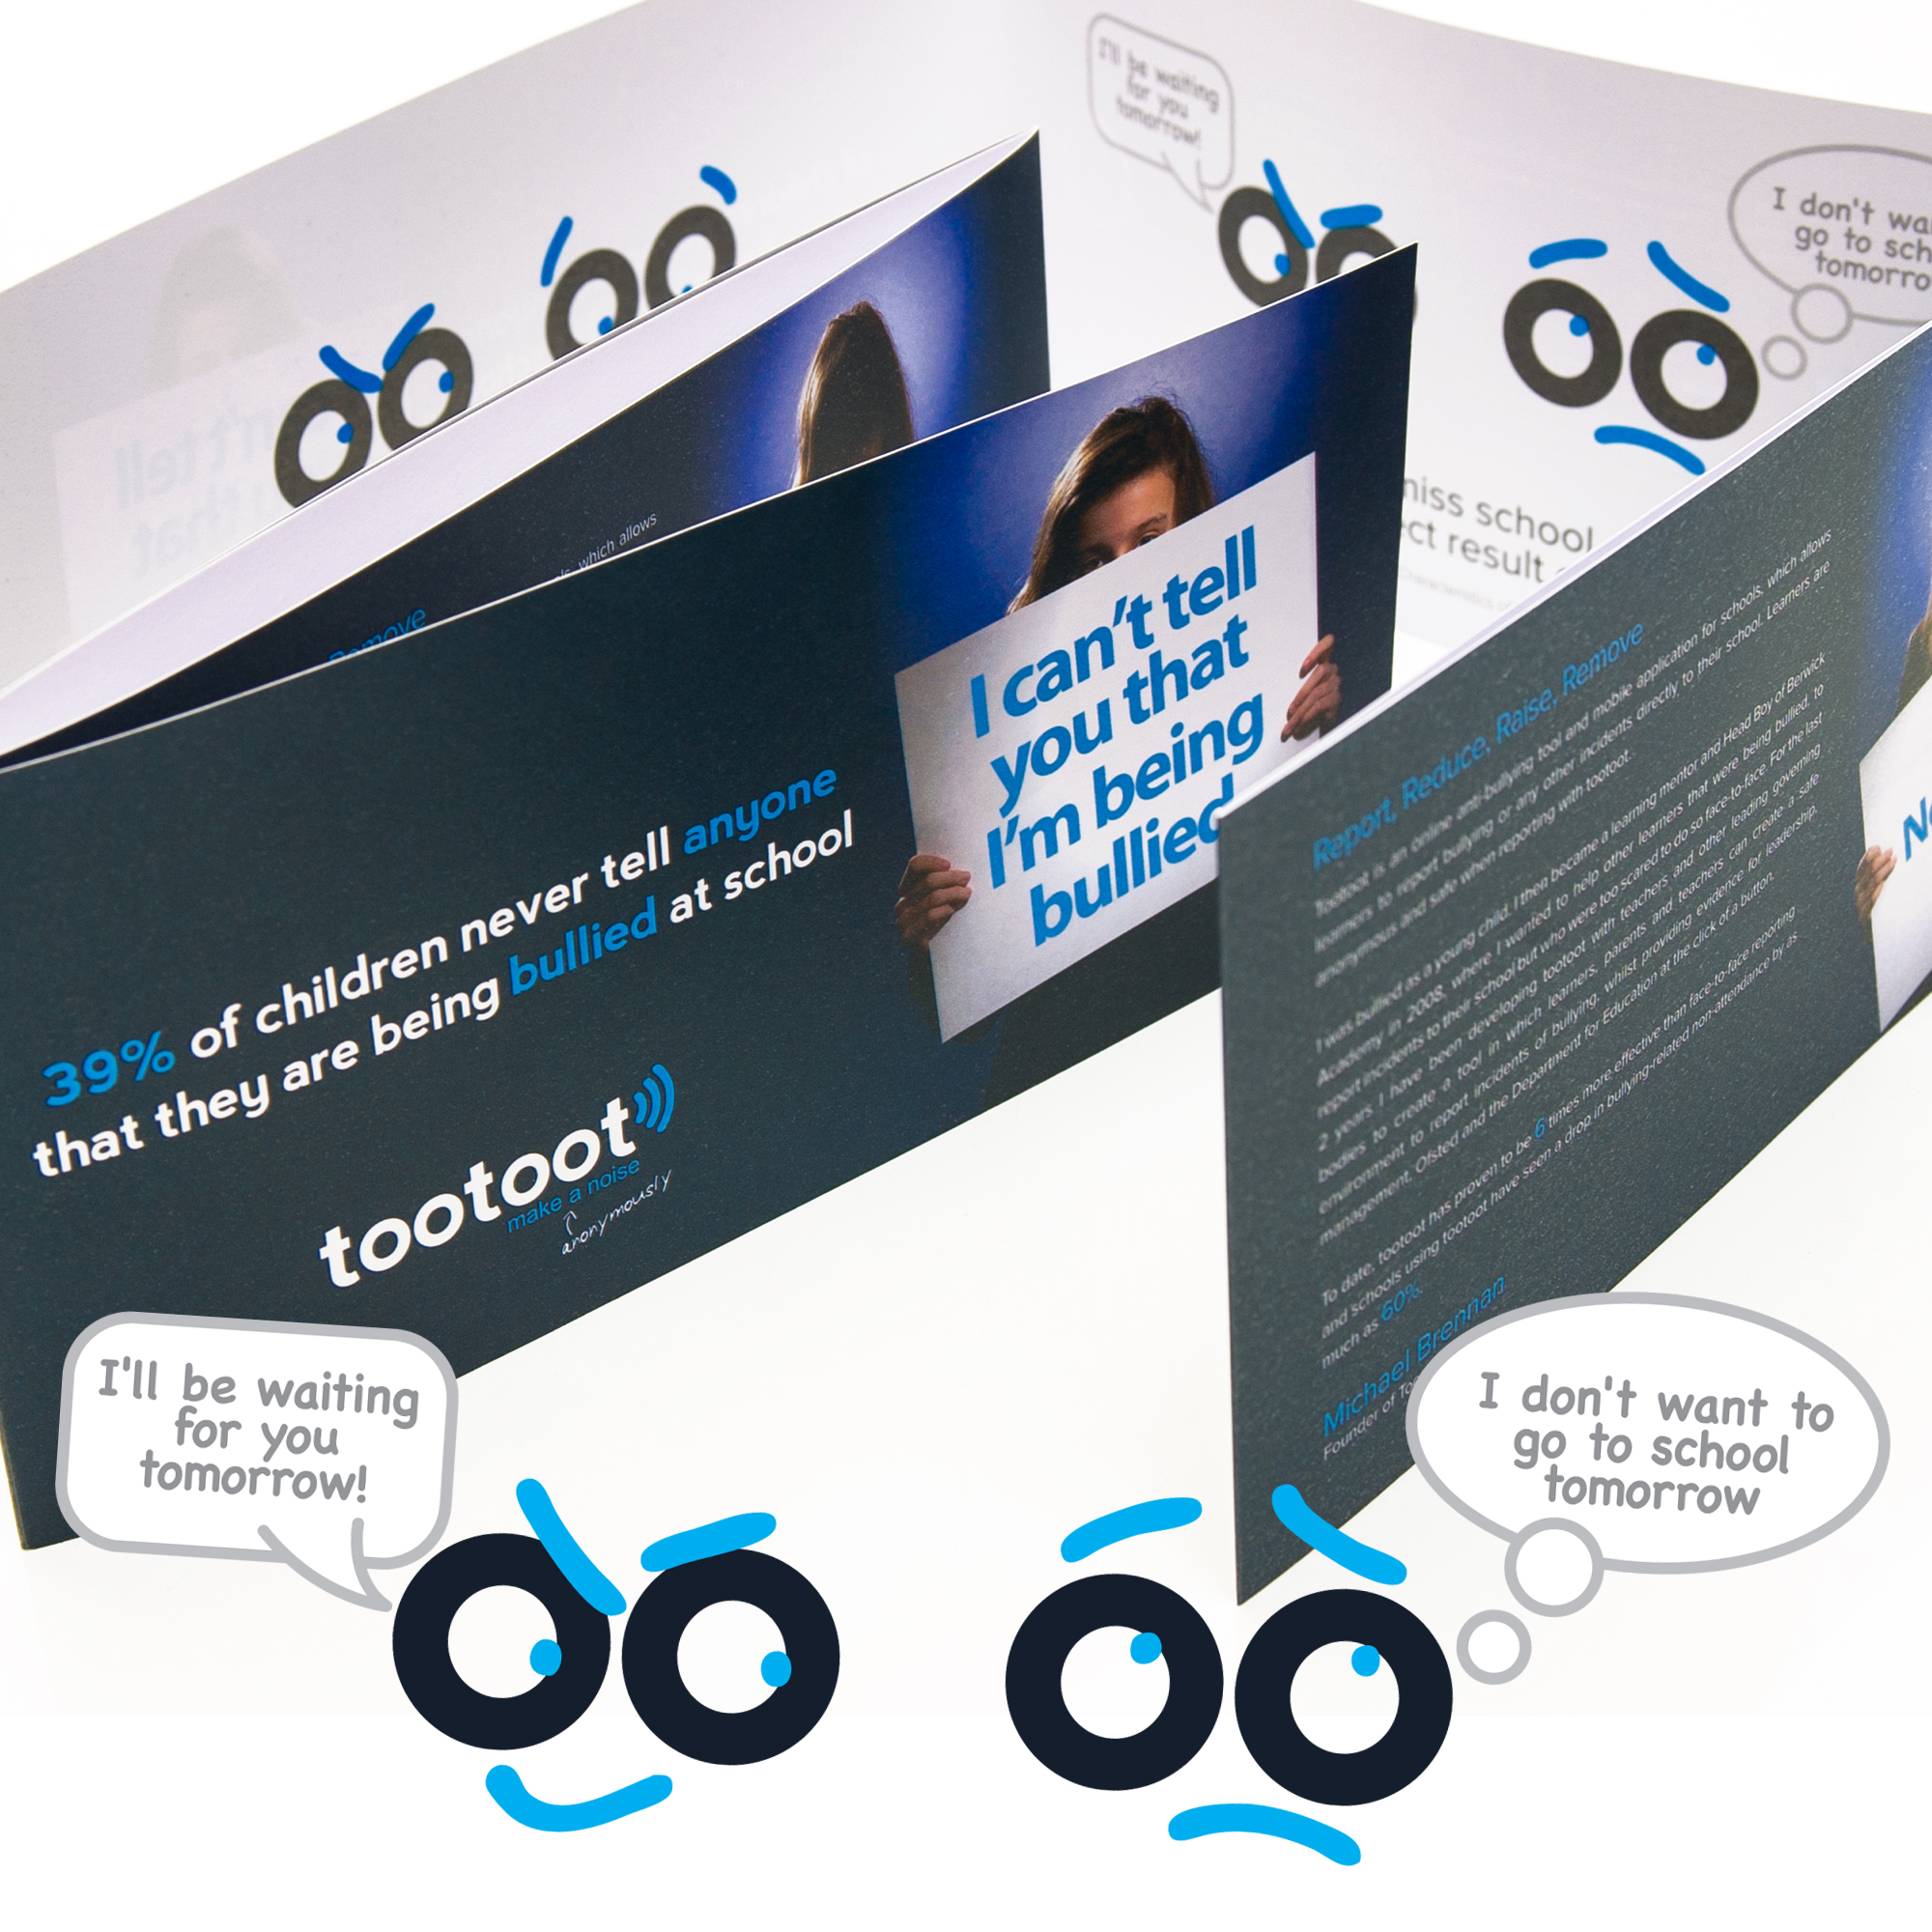 Marketing Leaflet Design for tootoot phone app